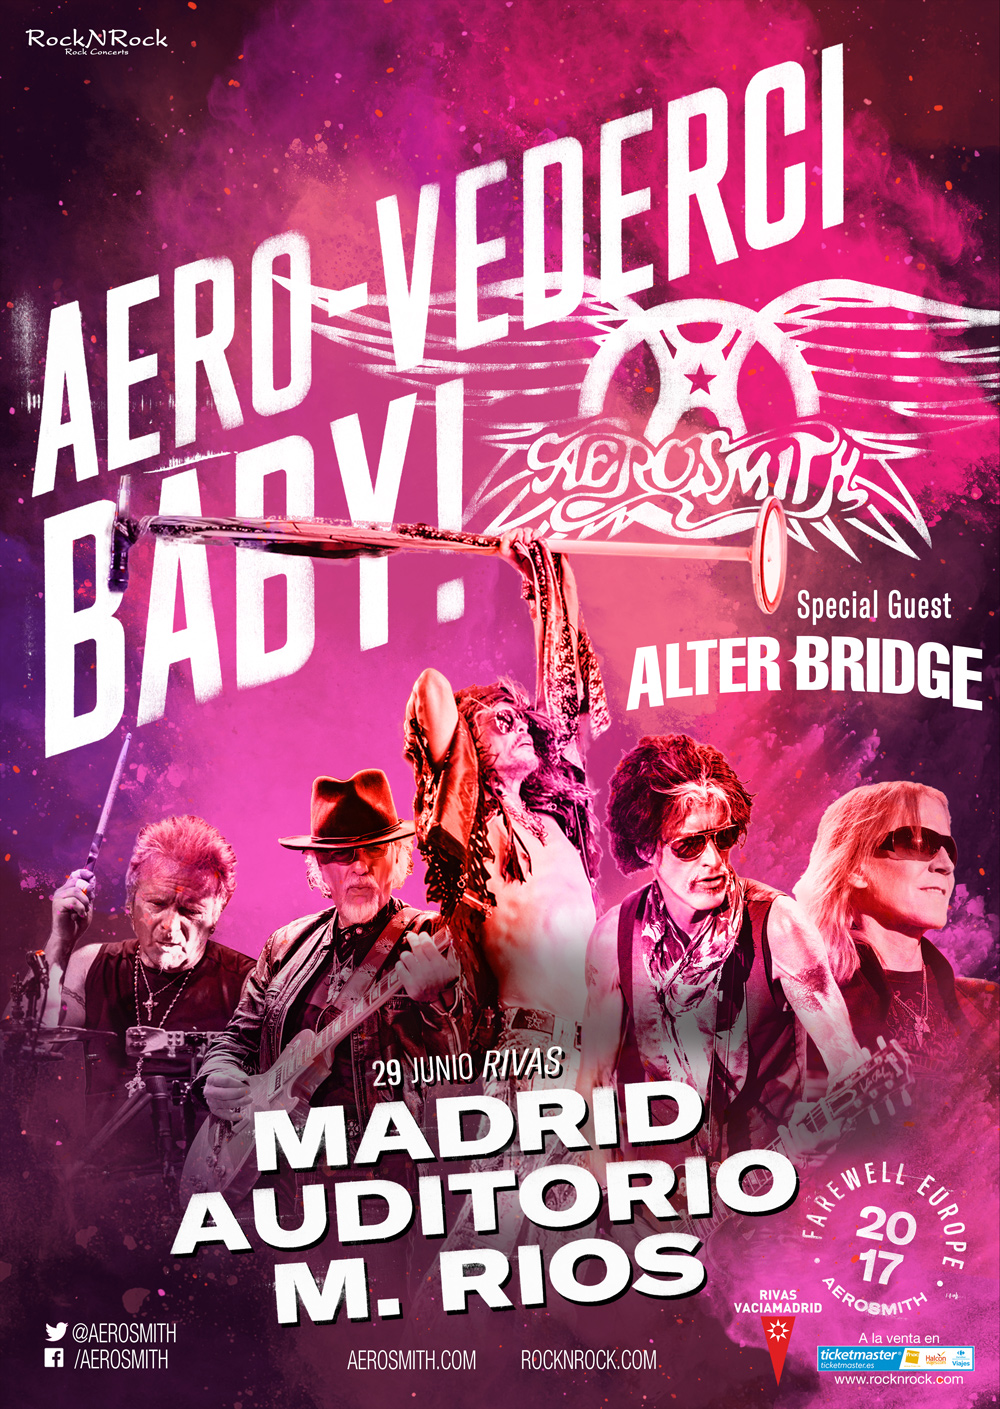 aerosmith-alter-bridge-madrid